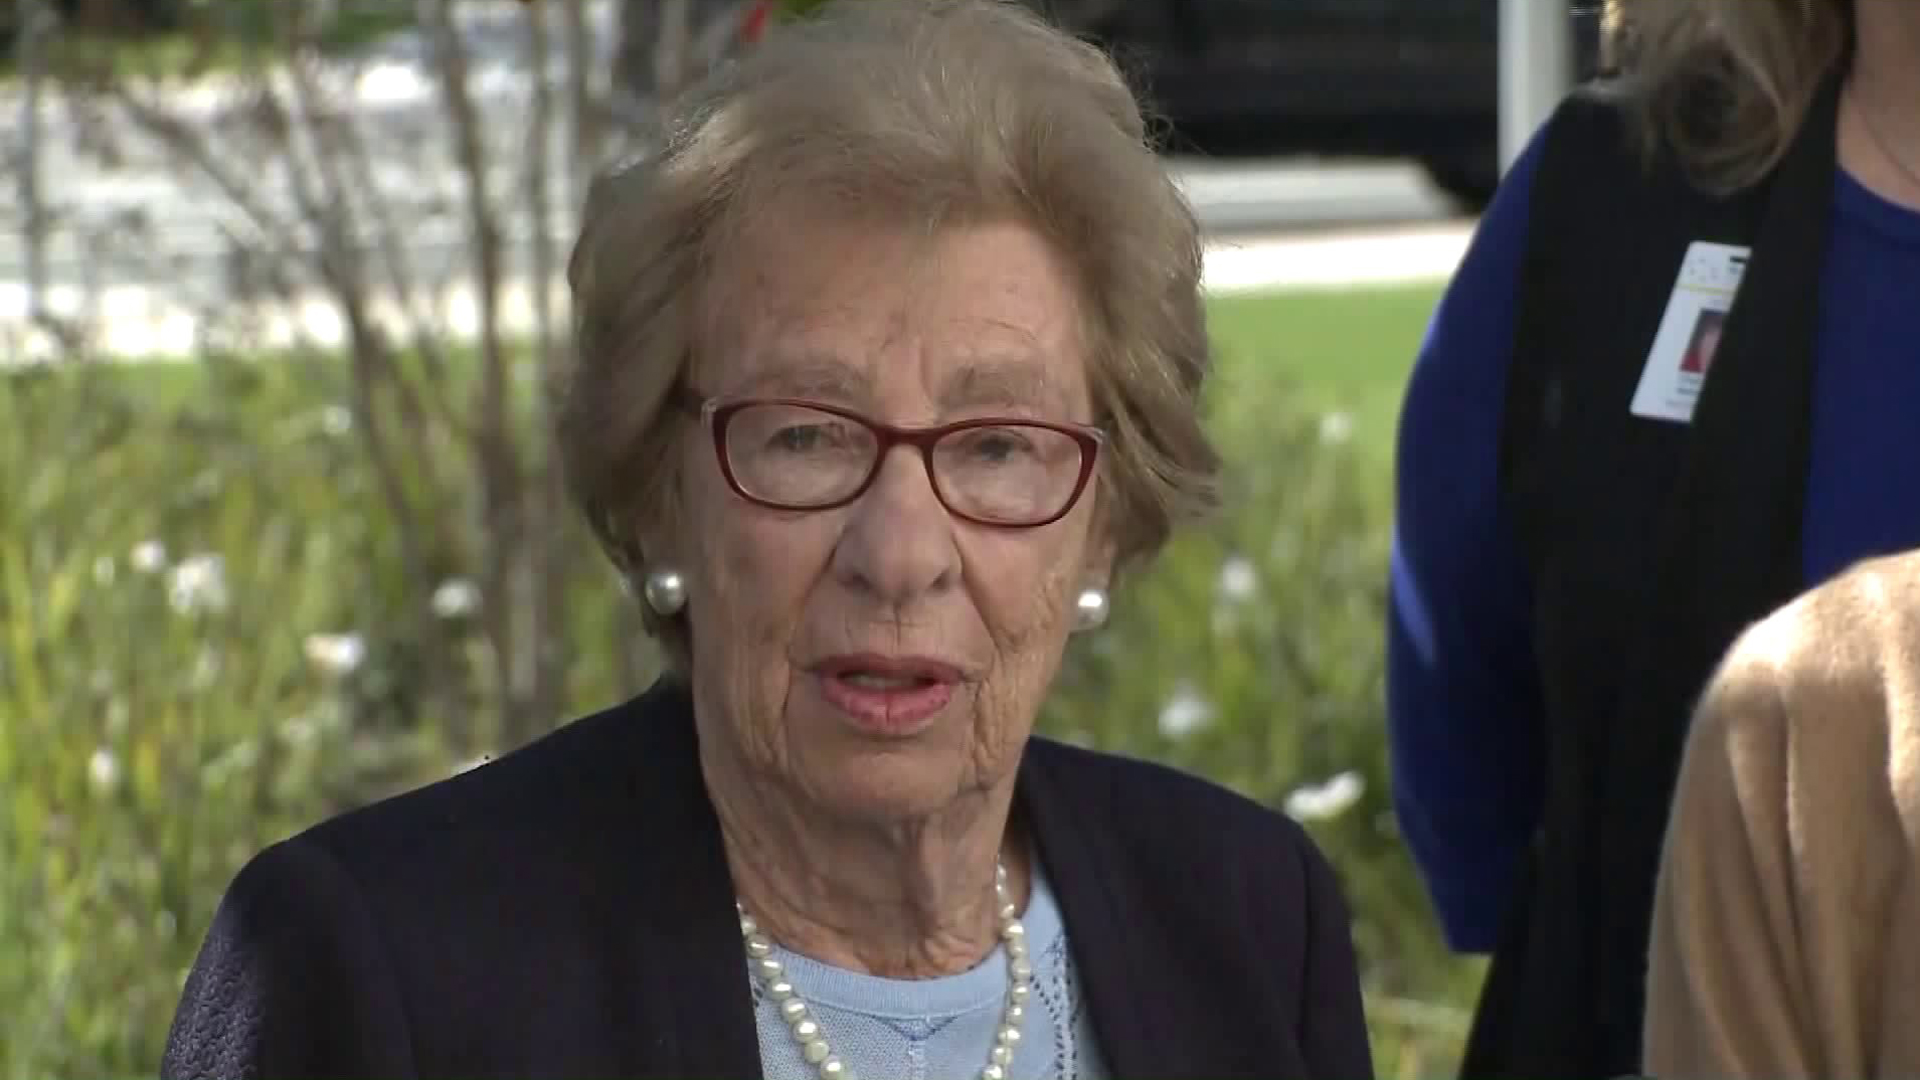 Eva Schloss, the stepsister of Anne Frank and a Holocaust survivor, speaks after meeting with Newport Beach high school students following a Nazi-themed party scandal on March 7, 2019. (Credit: KTLA)